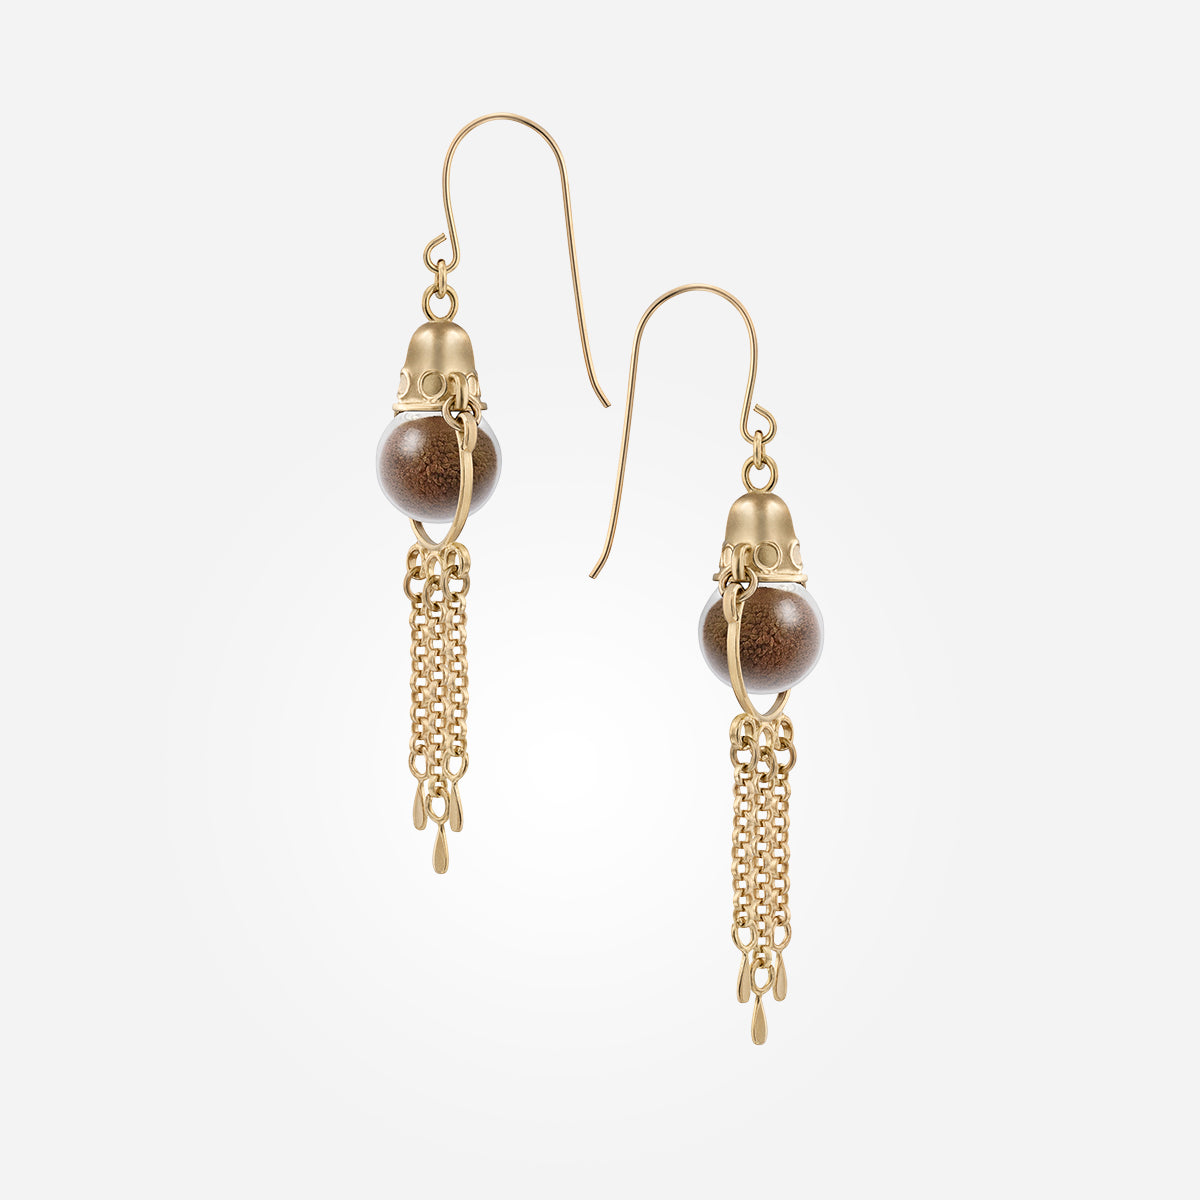 Shnashil Soil Earrings